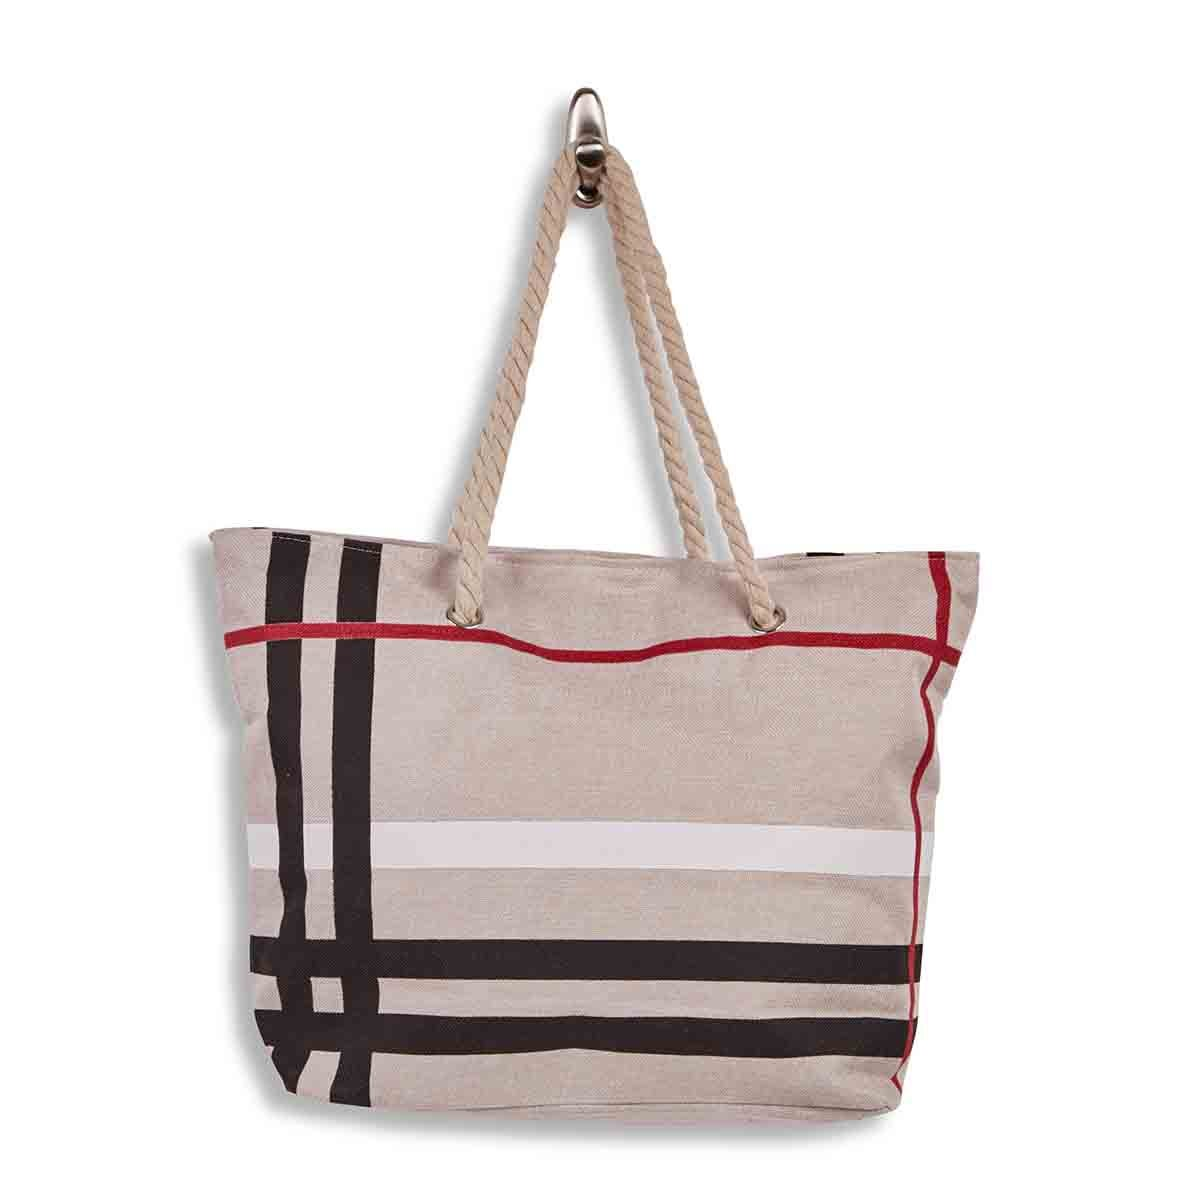 Lds beige large canvas tote bag